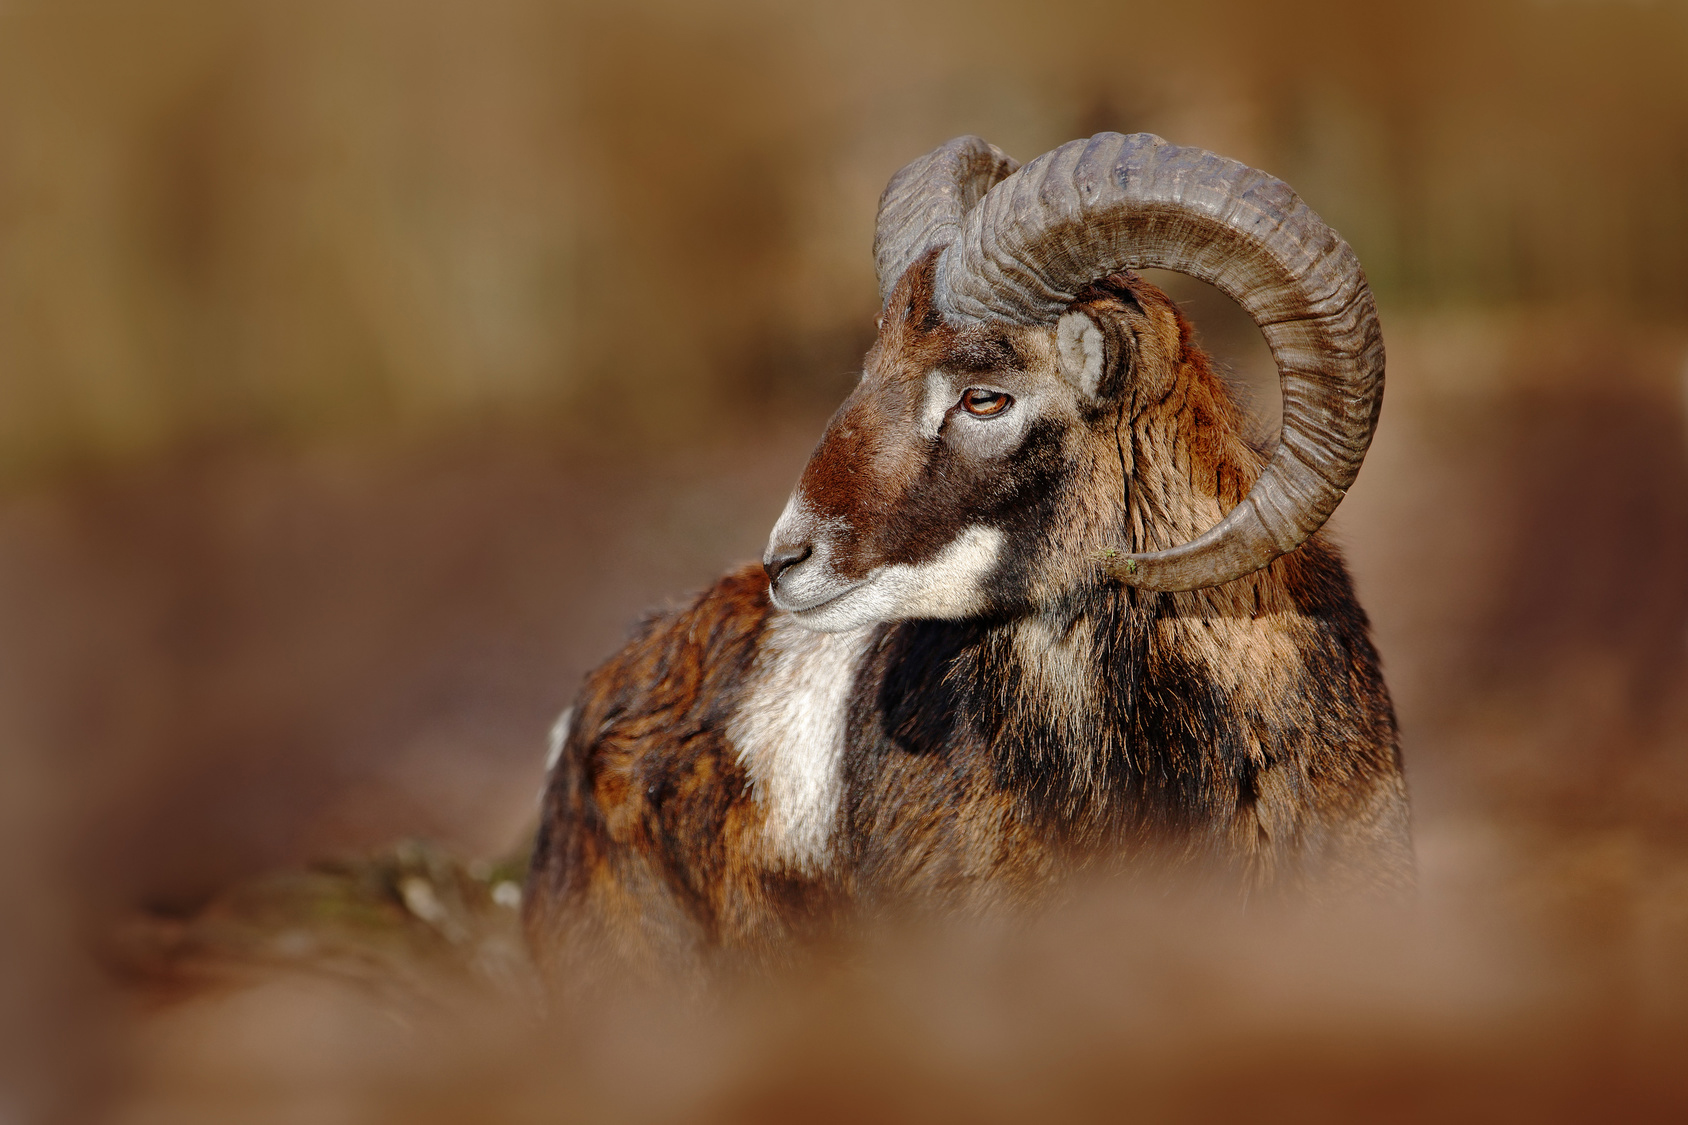 Mouflon, Ovis orientalis, forest horned animal in the nature hab